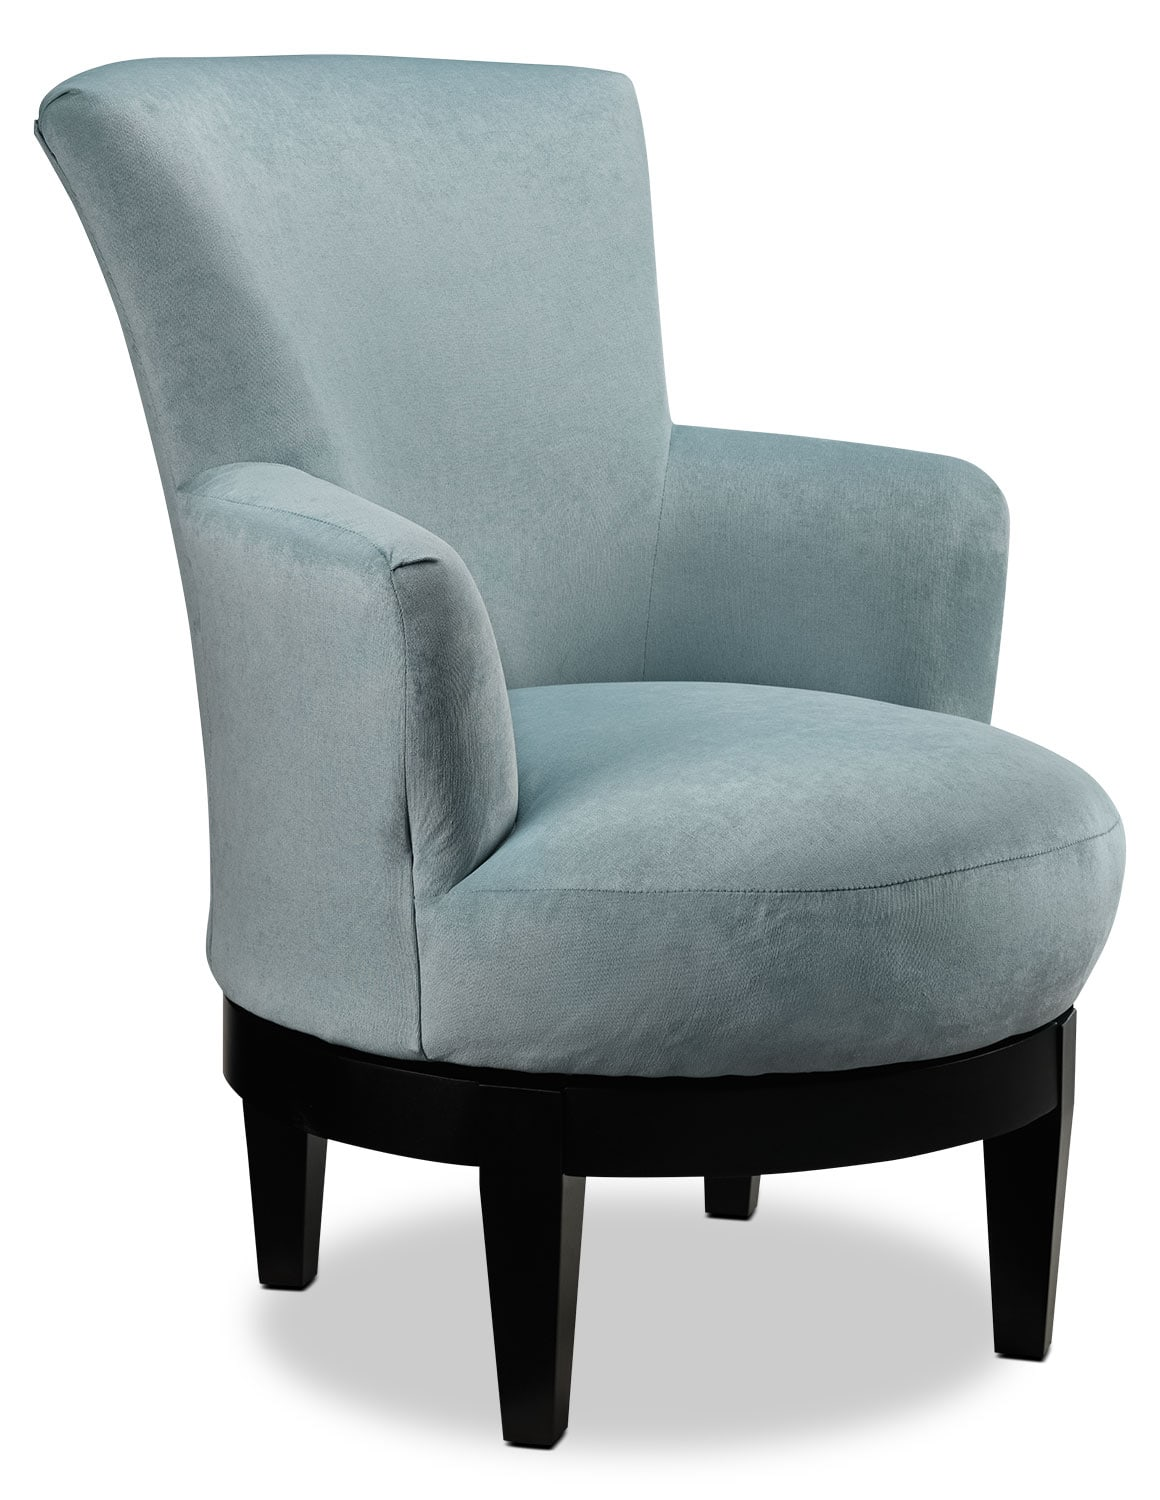 Justine Accent Chair - Spa Blue